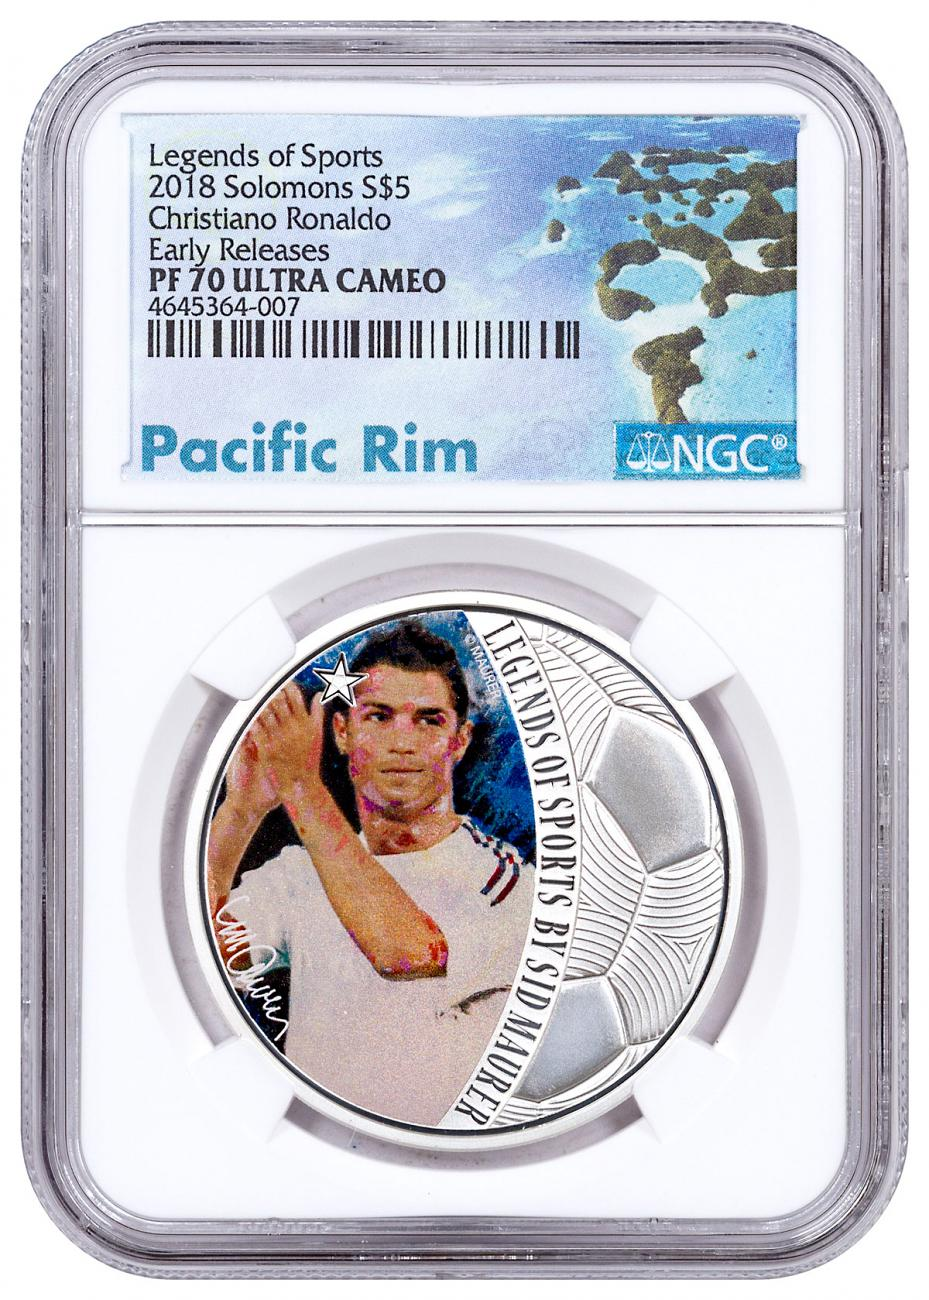 2018 Solomon Islands Legends of Sports - Cristiano Ronaldo Soccer 1 oz Silver Colorized Proof $5 Coin NGC PF70 UC ER Exclusive Pacific Rim Label